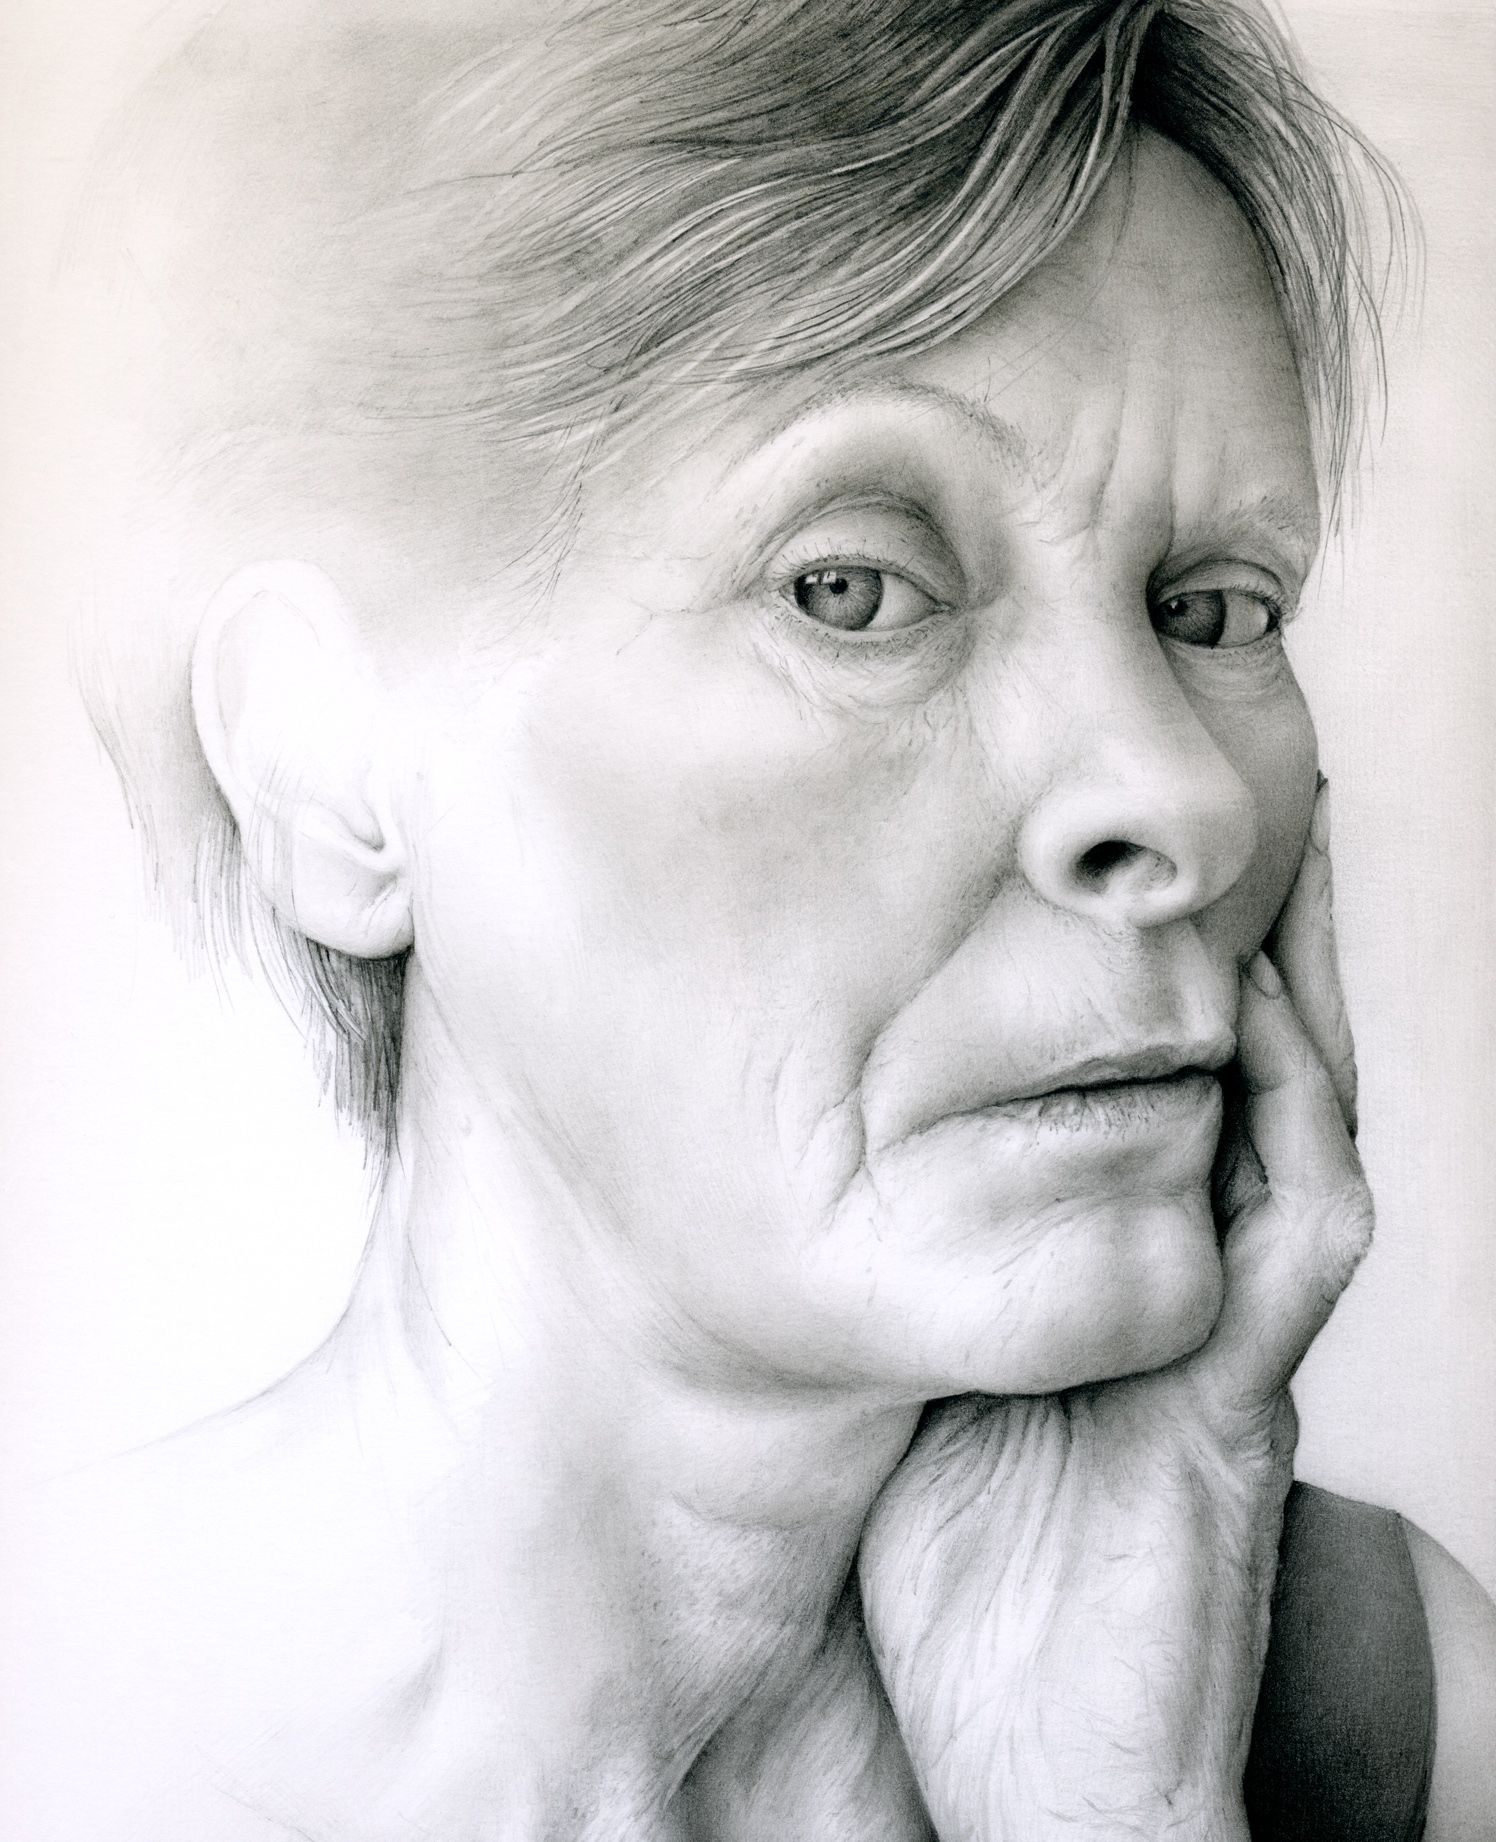 Woman gazing out portrait face partial drawing cath riley debut art